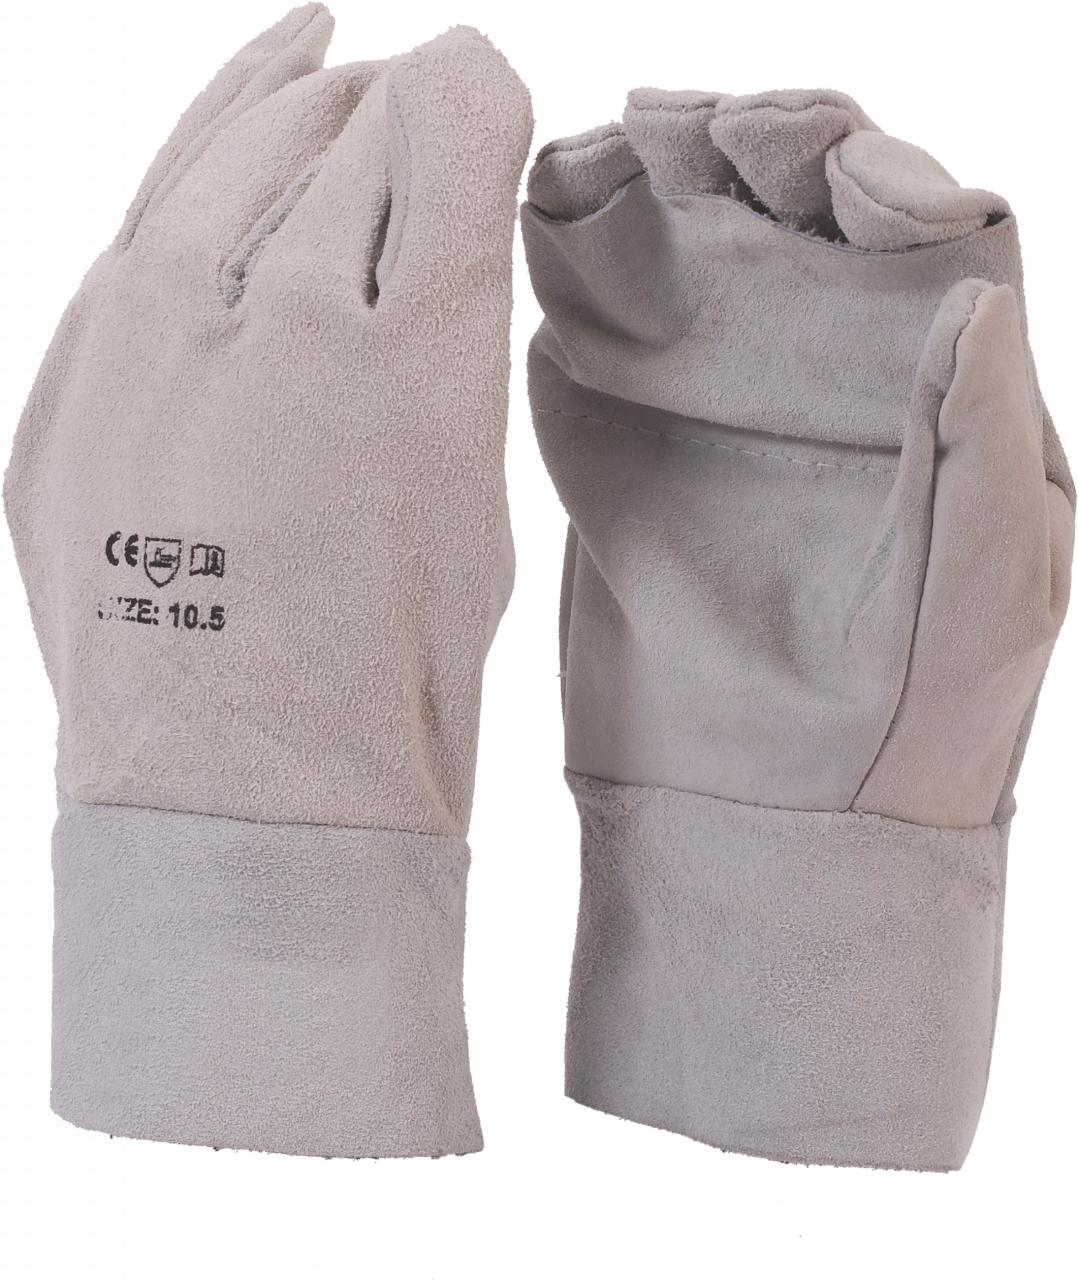 Leather Glove Leather Apron Palm 2.5 inch